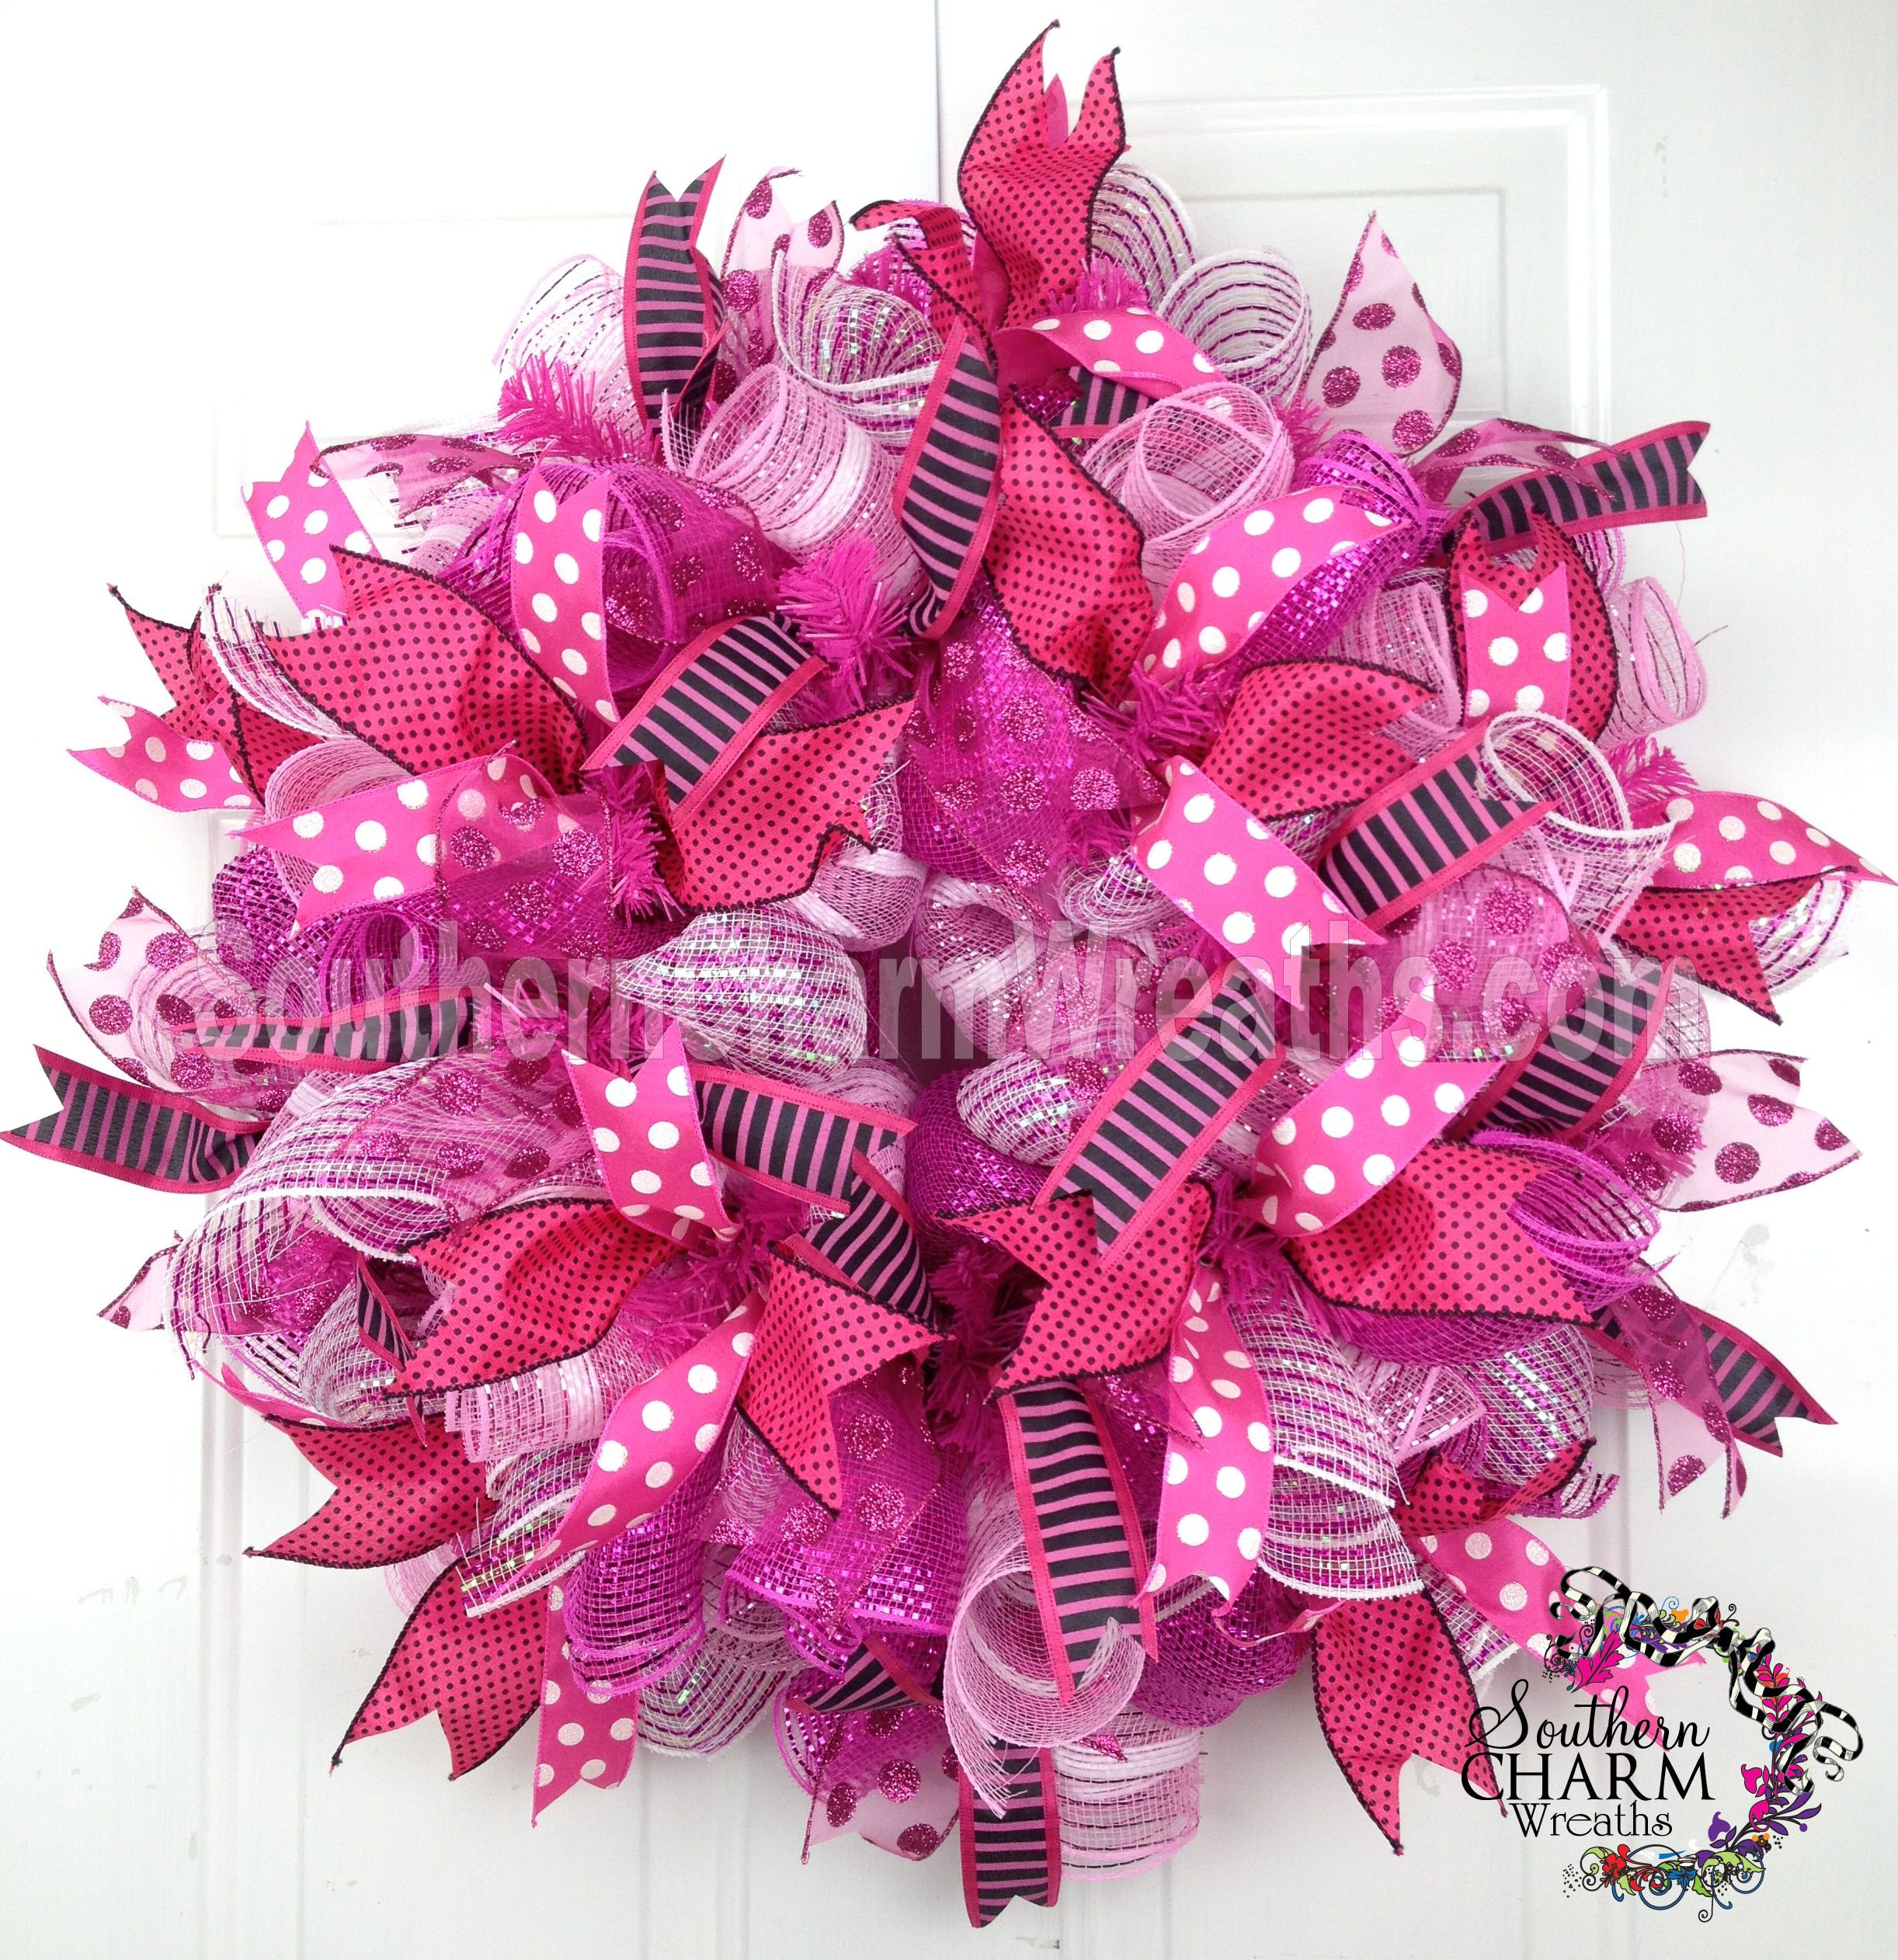 How to add ribbon to deco mesh wreaths streamers wreaths and craft how to add ribbon streamers to deco mesh wreaths baditri Gallery